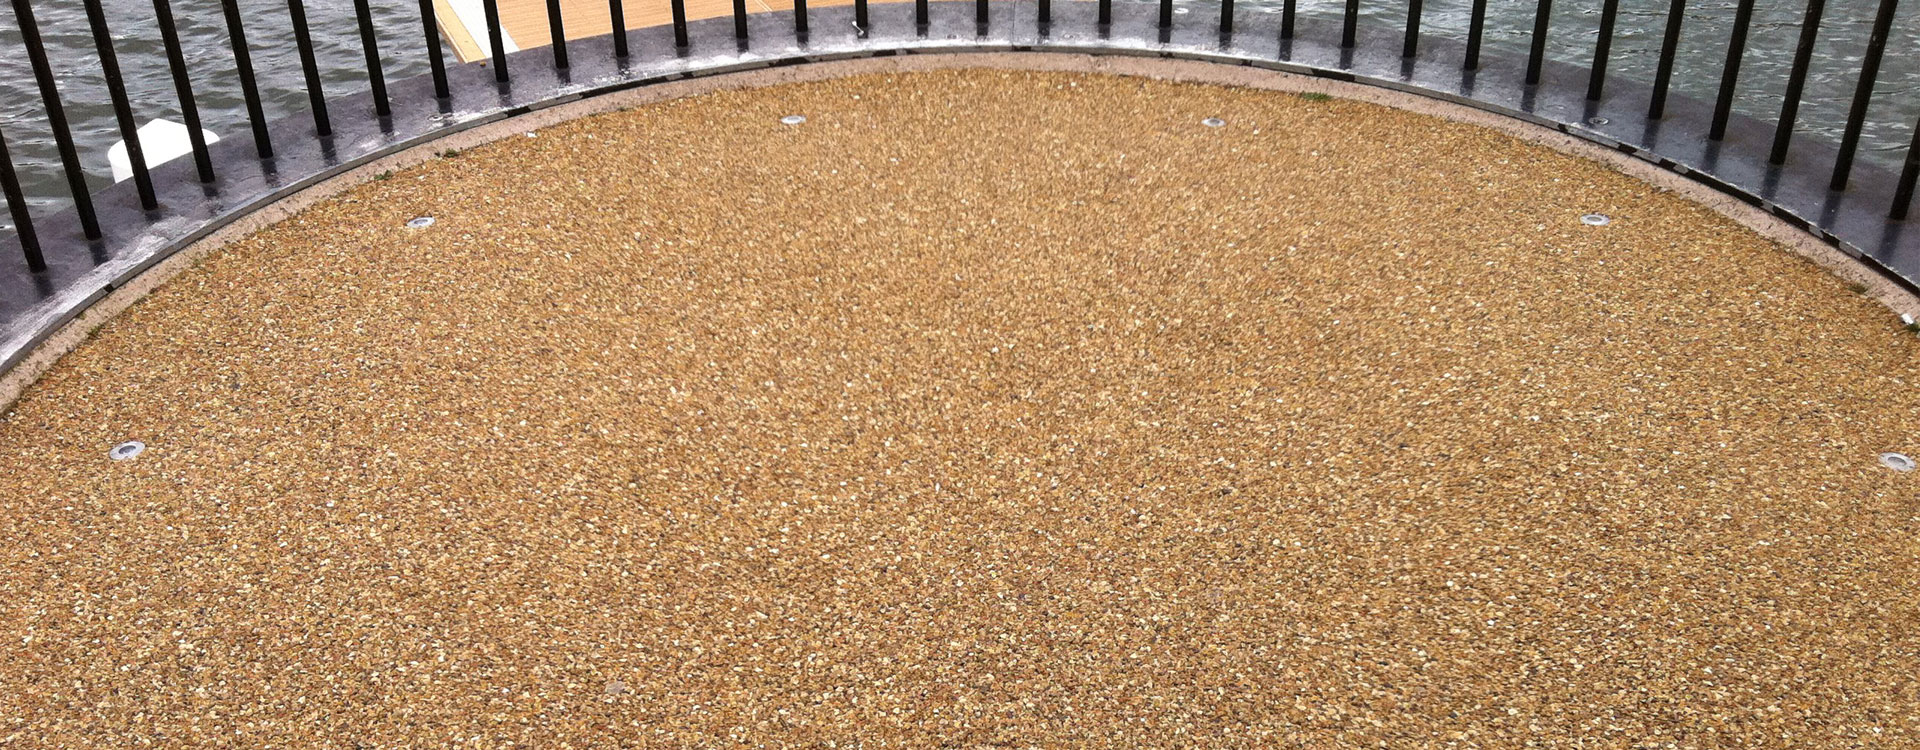 What is the Difference Between Resin Bonded and Resin Bound Gravel?